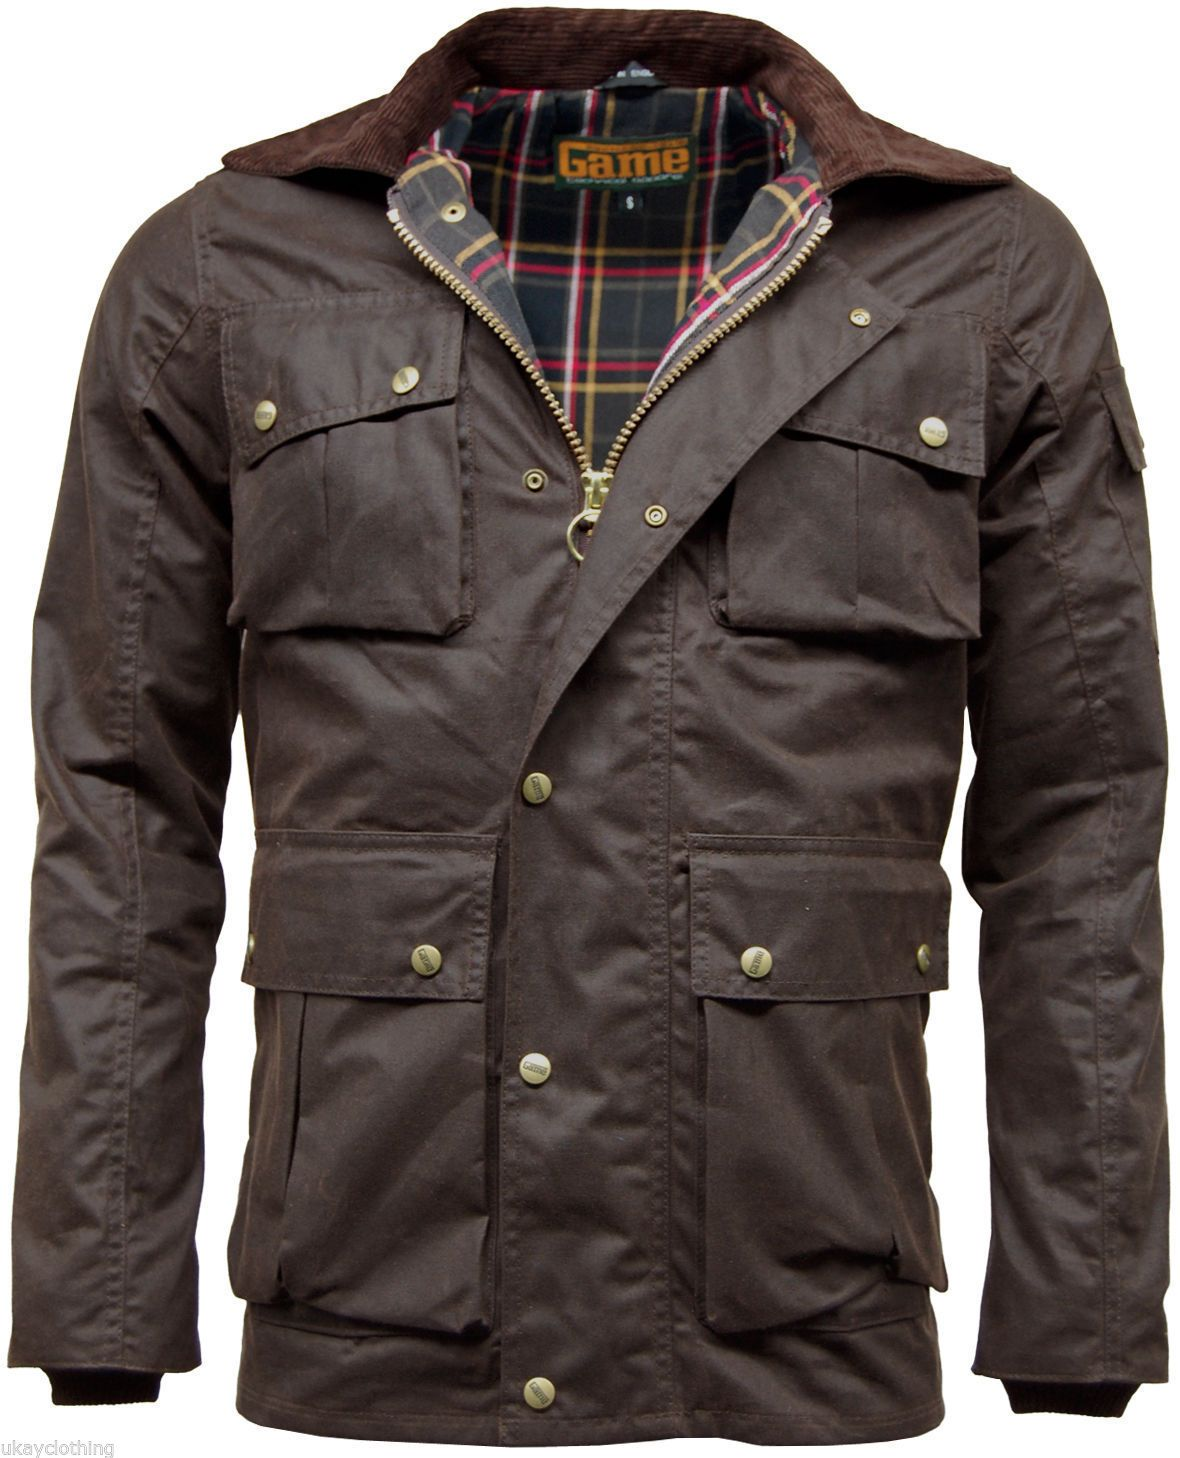 Mens Game Utilitas Waxed Cotton Wax Jacket Utility Muliti